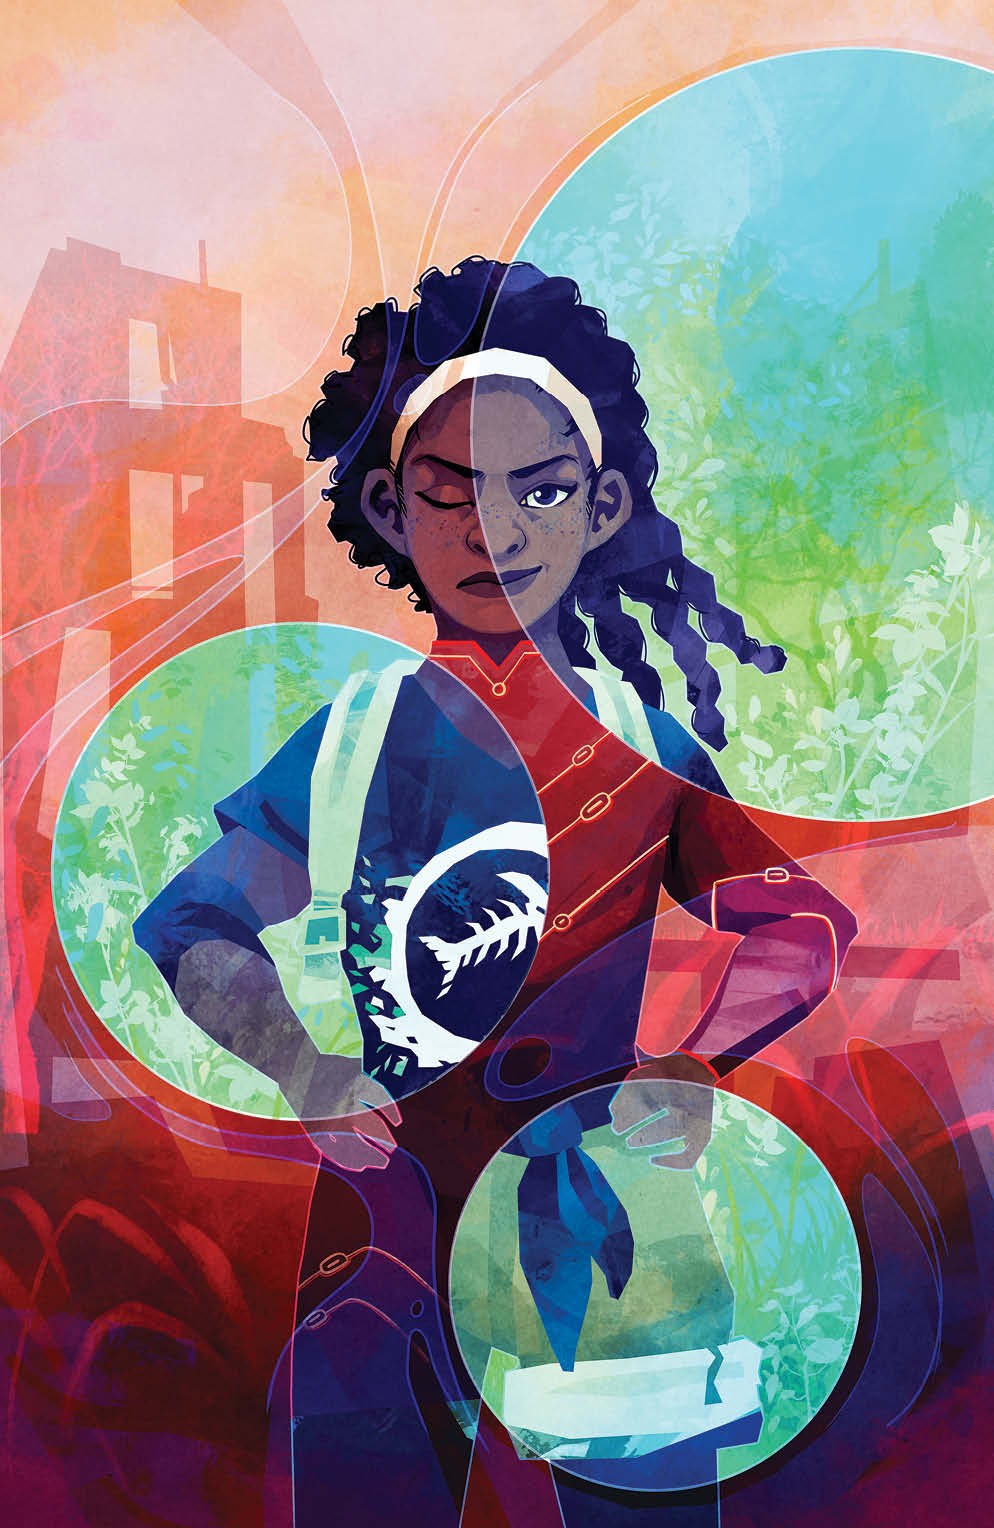 Eve_004_Cover_D_Variant_Undressed ComicList: BOOM! Studios New Releases for 08/11/2021